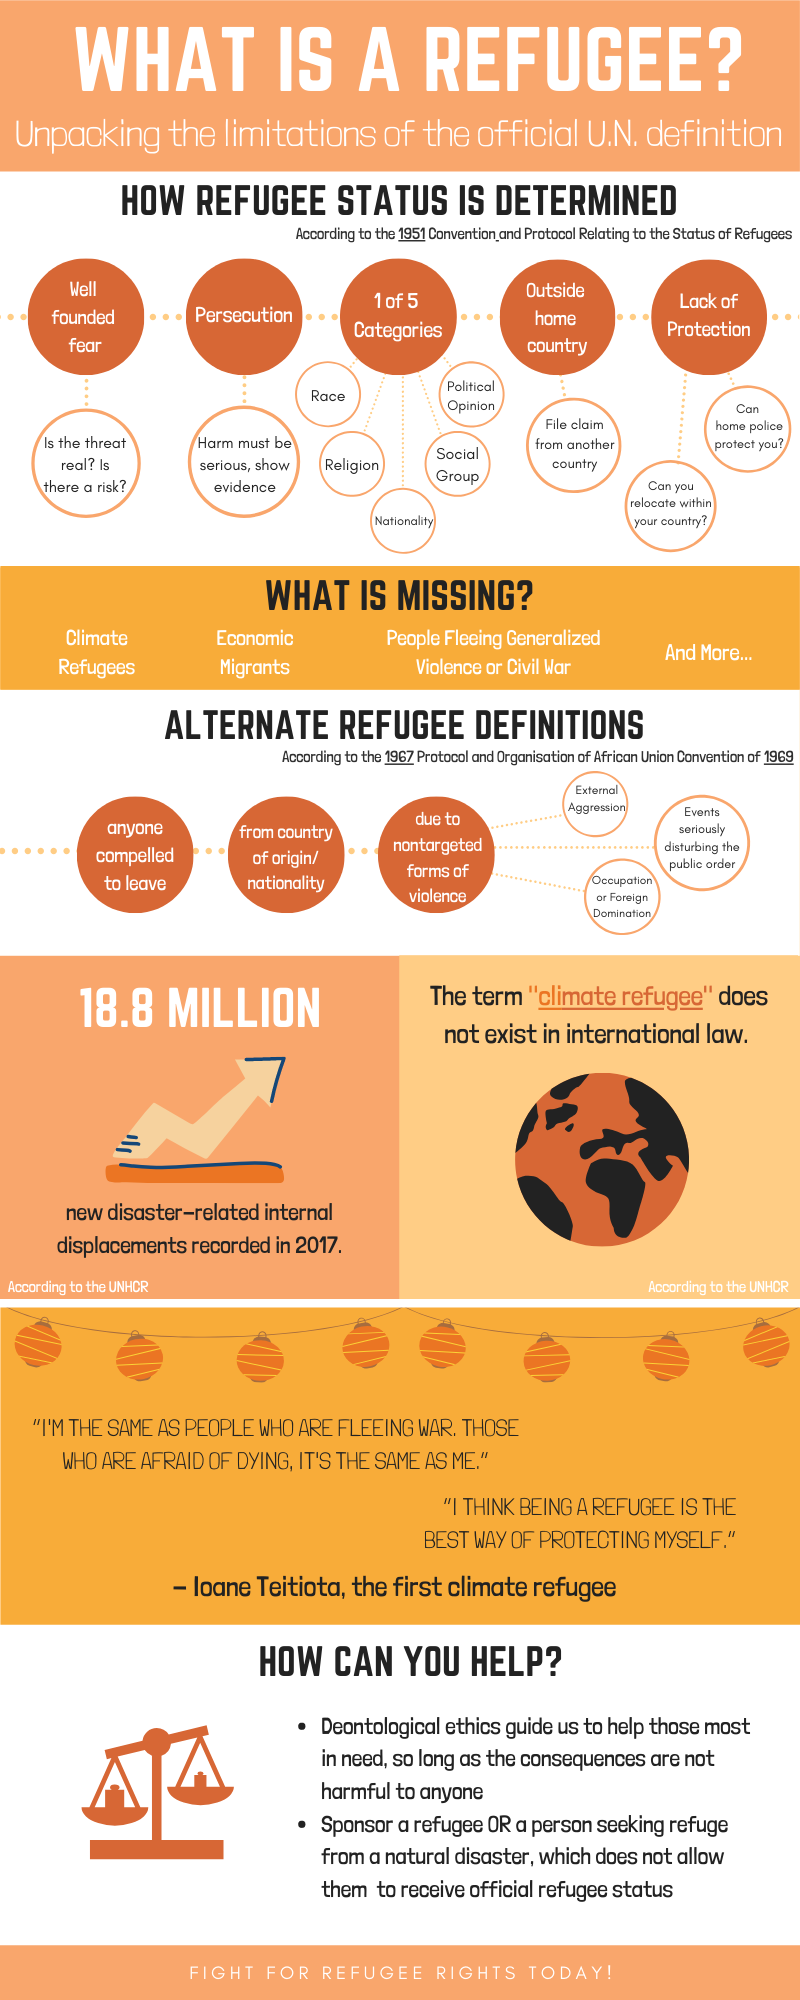 Infographic analyzing the 1951 Convention refugee definition, unpacking its limitations and highlighting the lack of protections for people seeking refuge due to climate change. See the heading Description for more information.